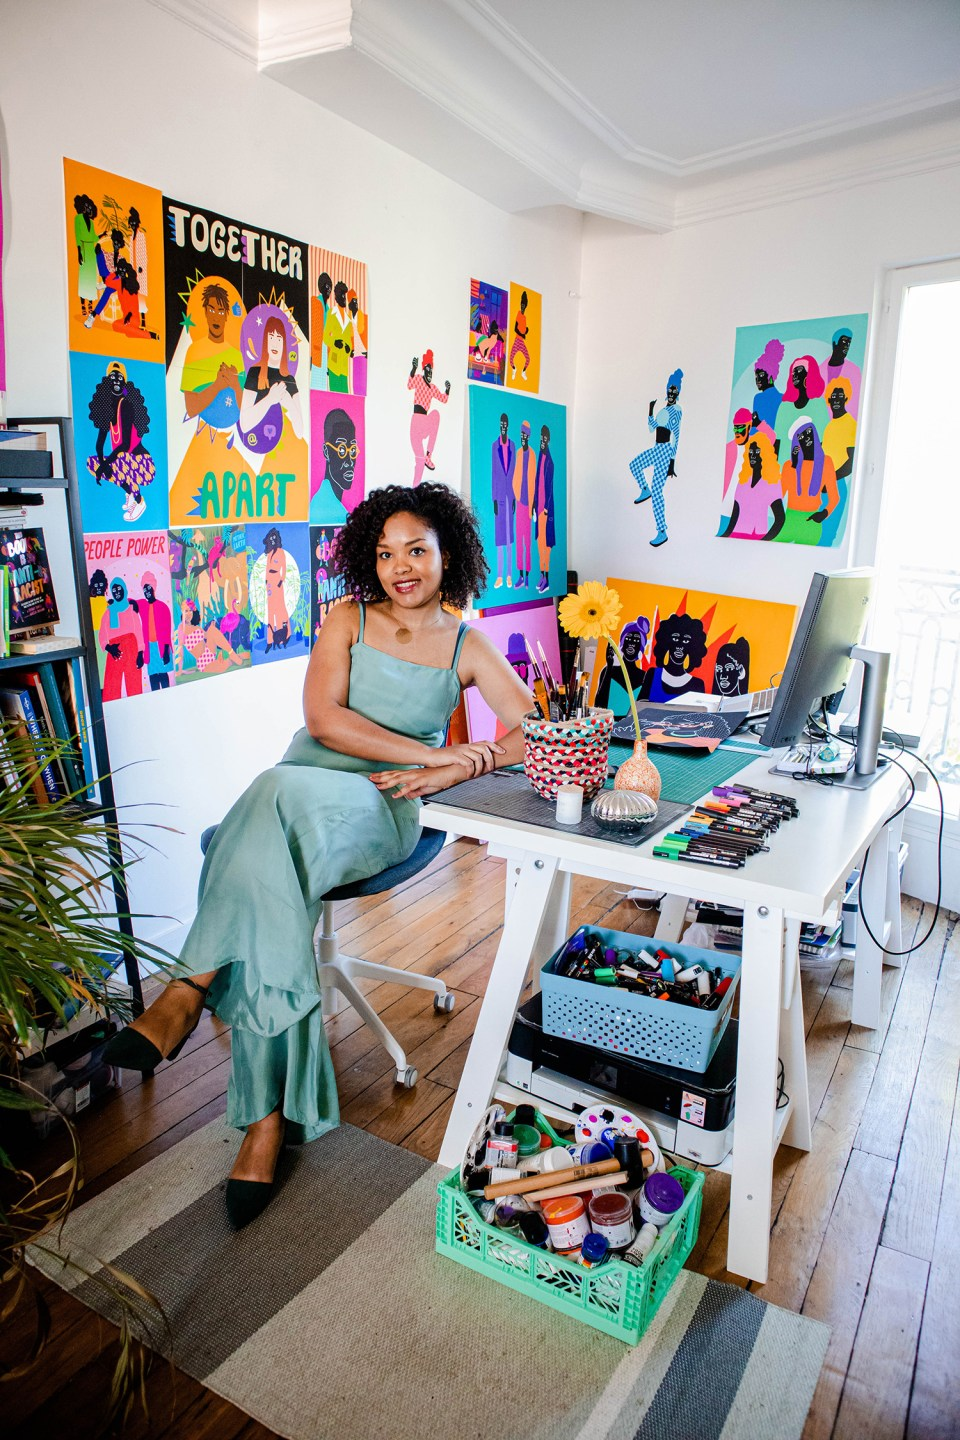 Aurelia Durand at home in her Northern Paris in her colourful studio space